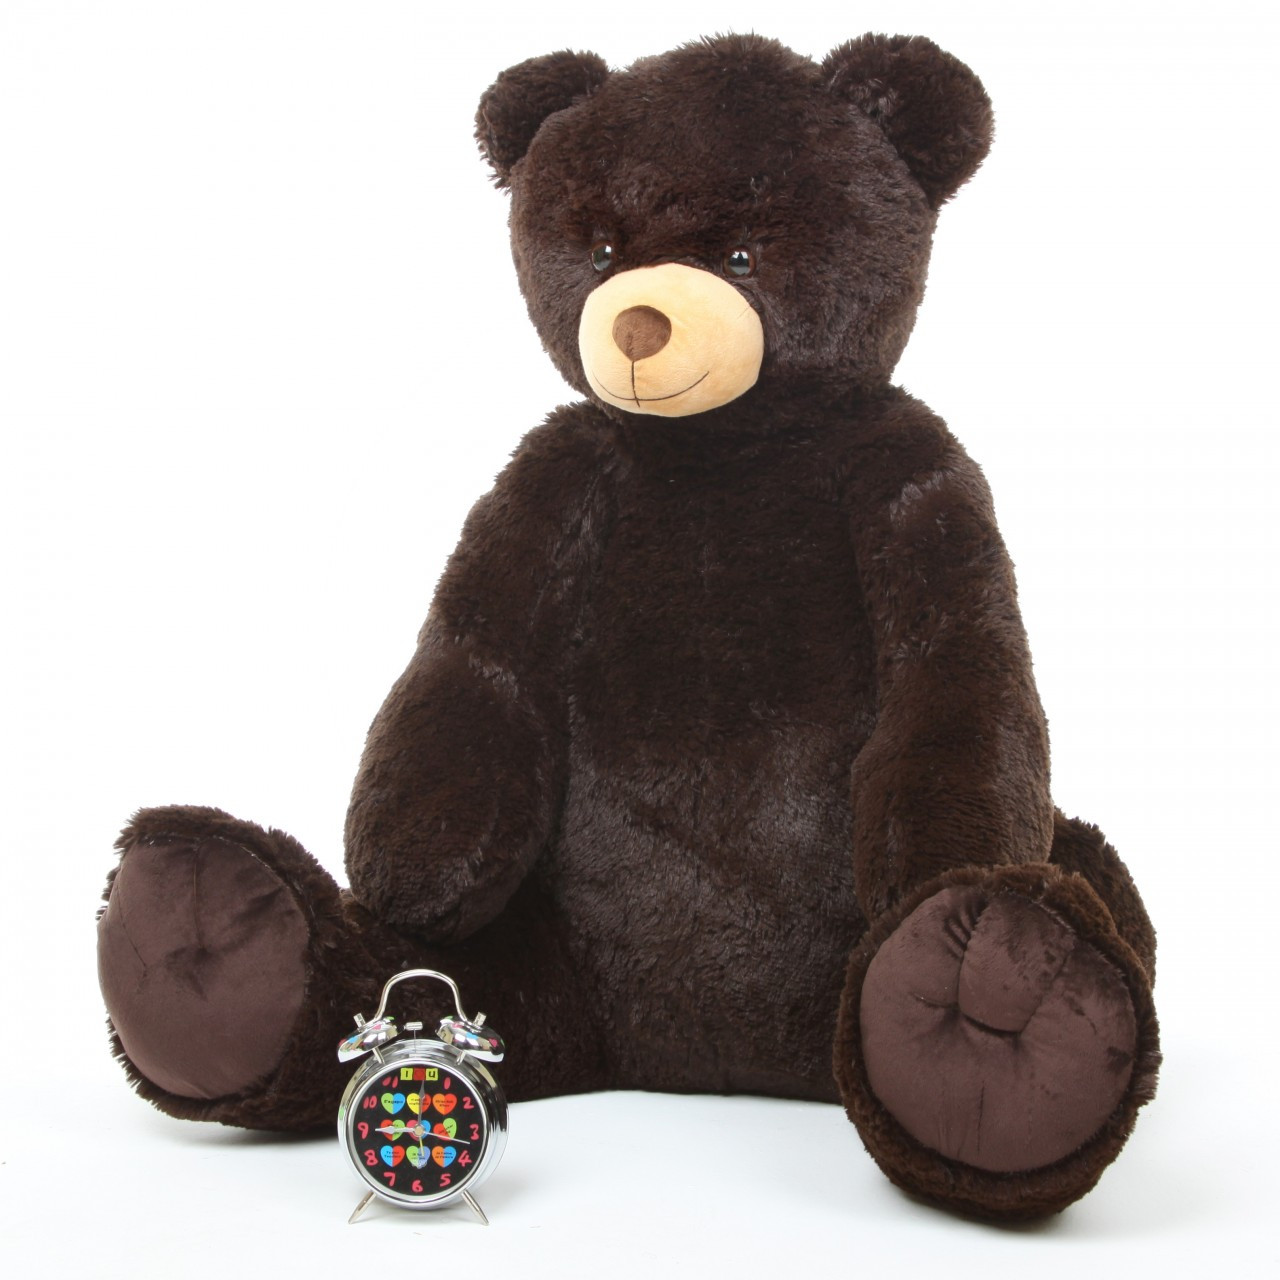 Baby Tubs 42 Quot Large Chocolate Plush Teddy Bear Giant